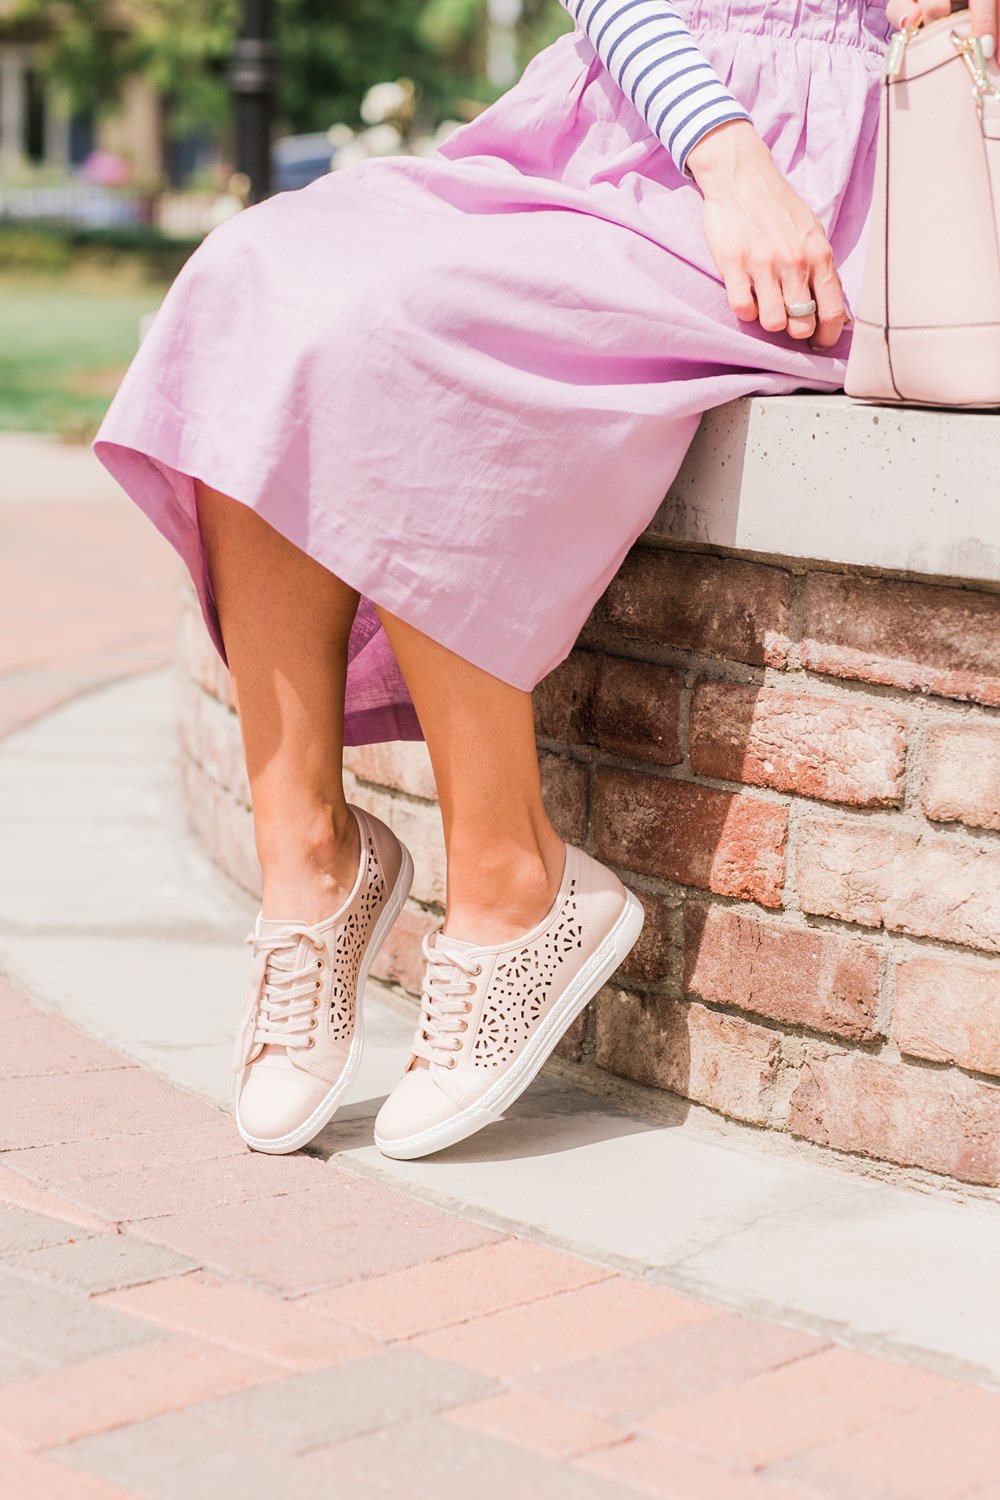 Merrick's Art Blush Perforated Sneakers